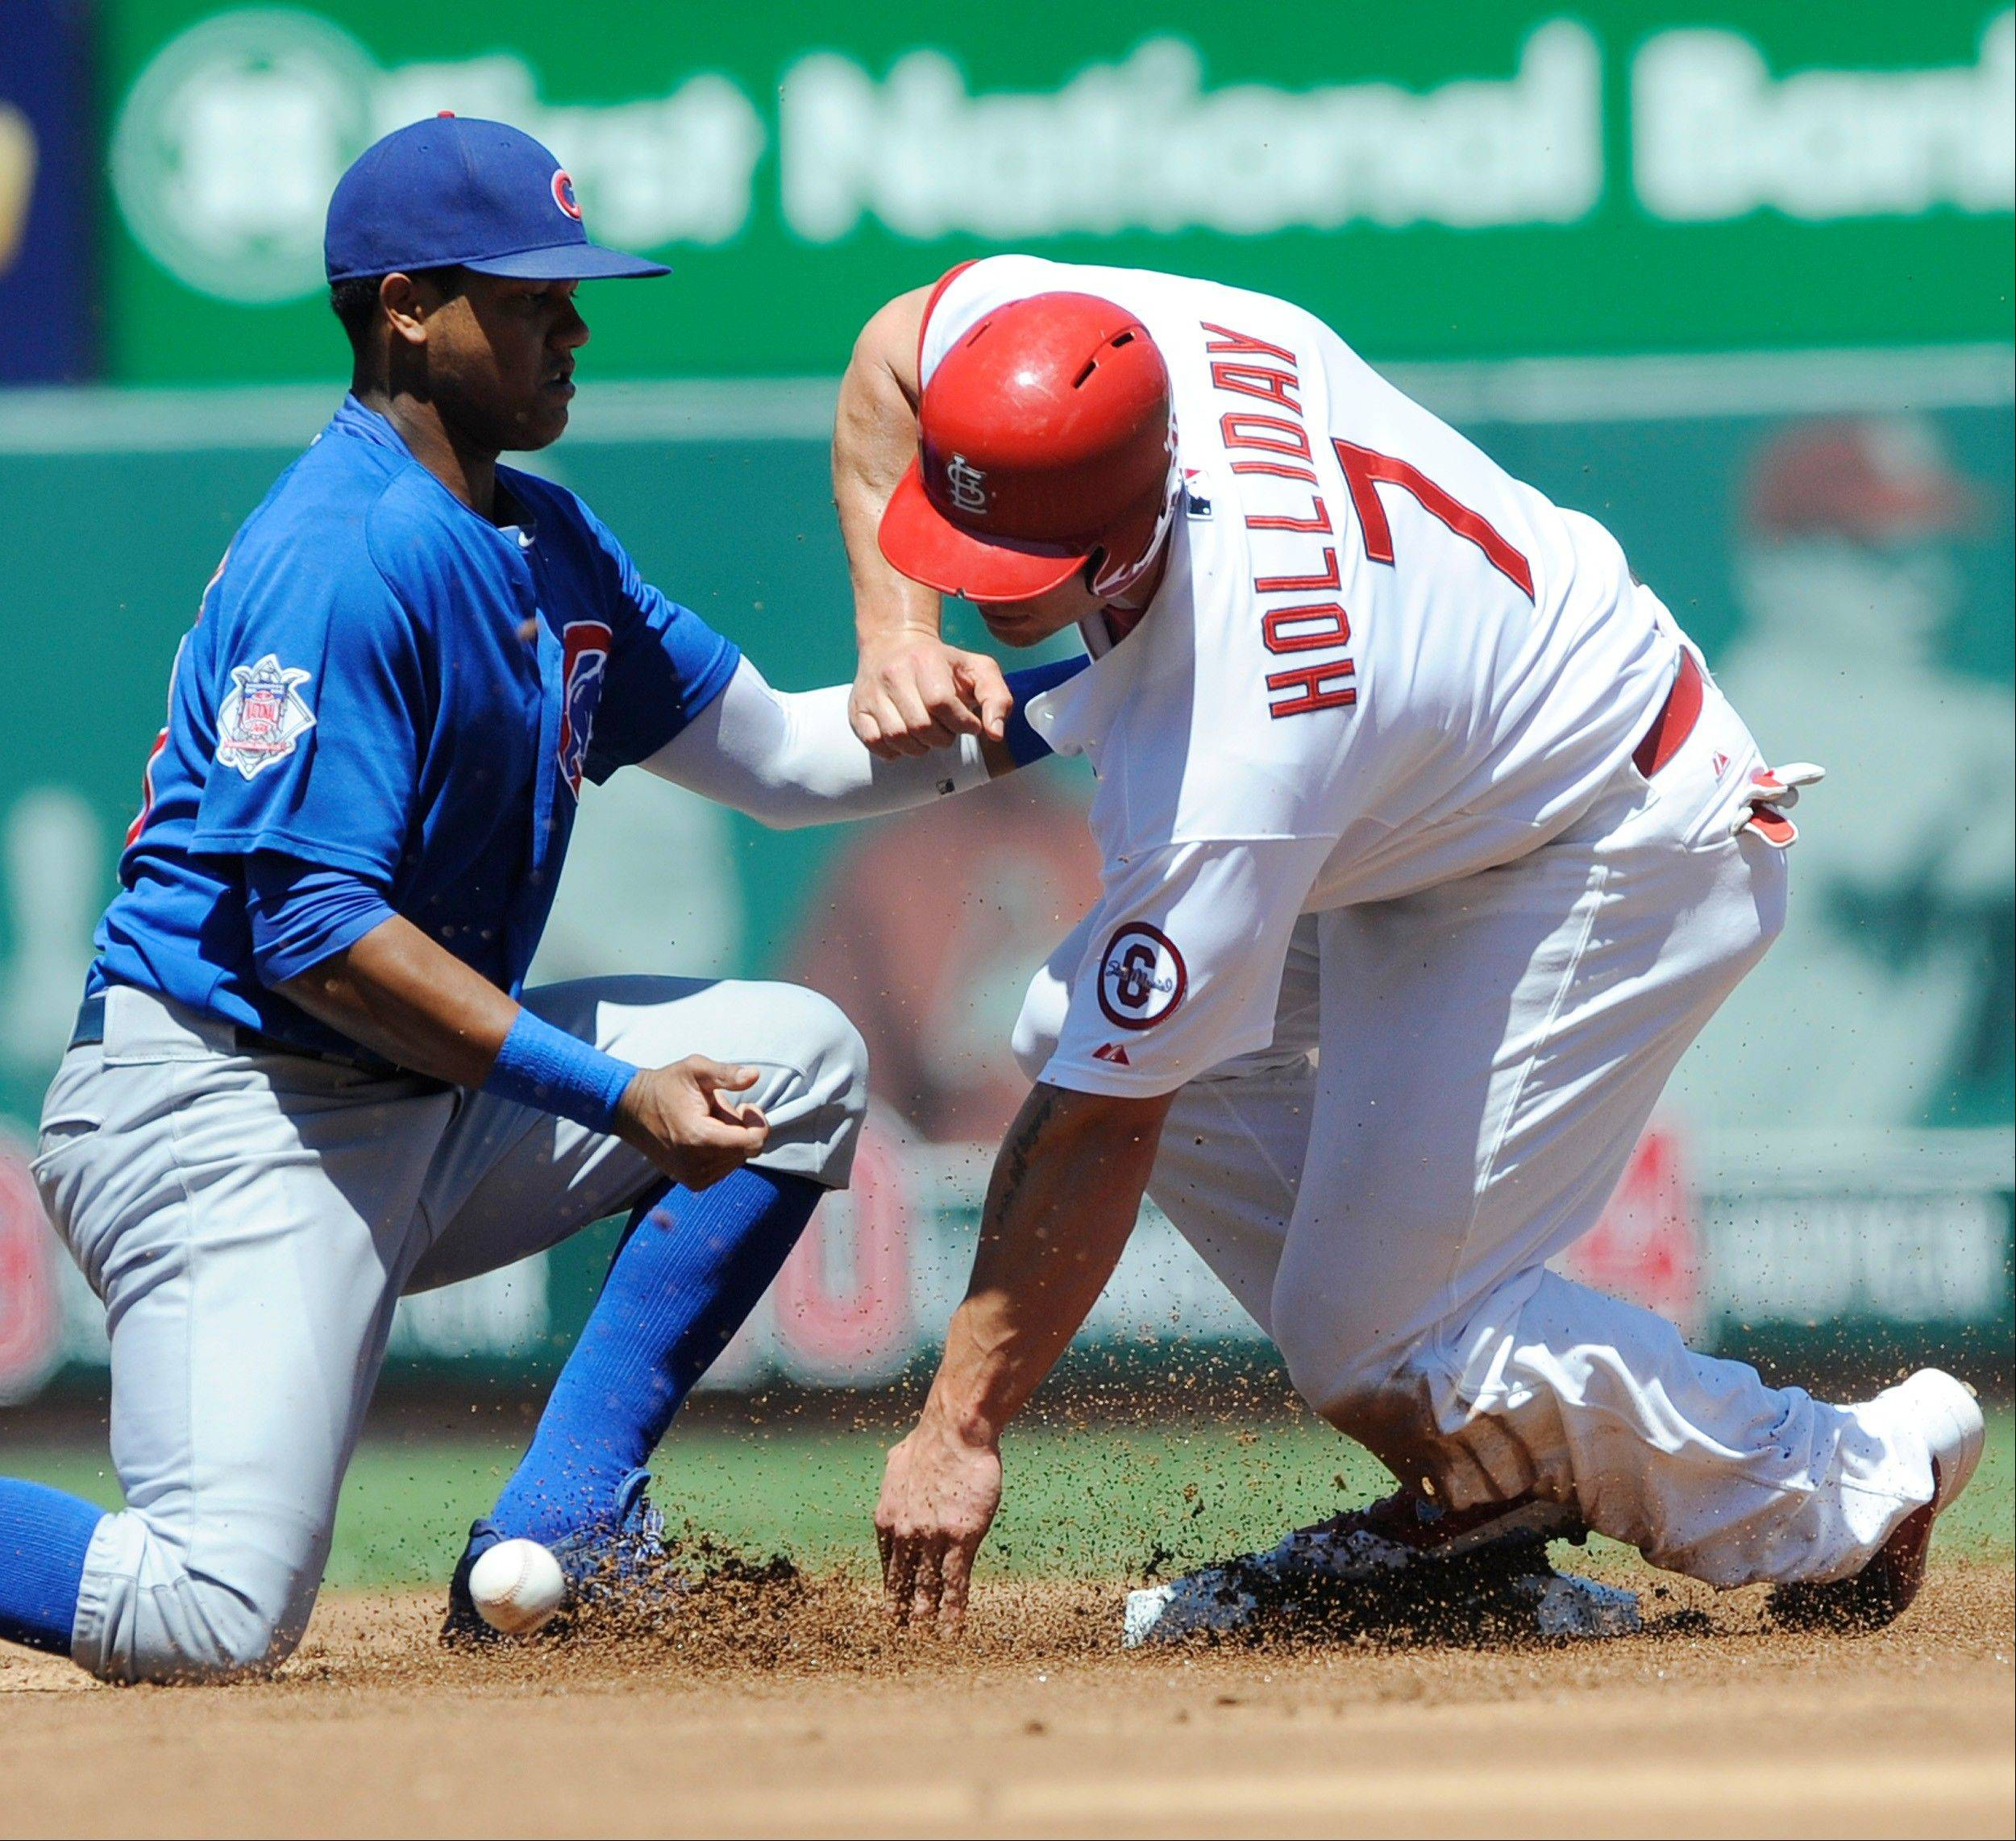 The St. Louis Cardinals' Matt Holliday steals second as the Cubs' Starlin Castro, left, cannot make the tag in Sunday's first inning at Busch Stadium.